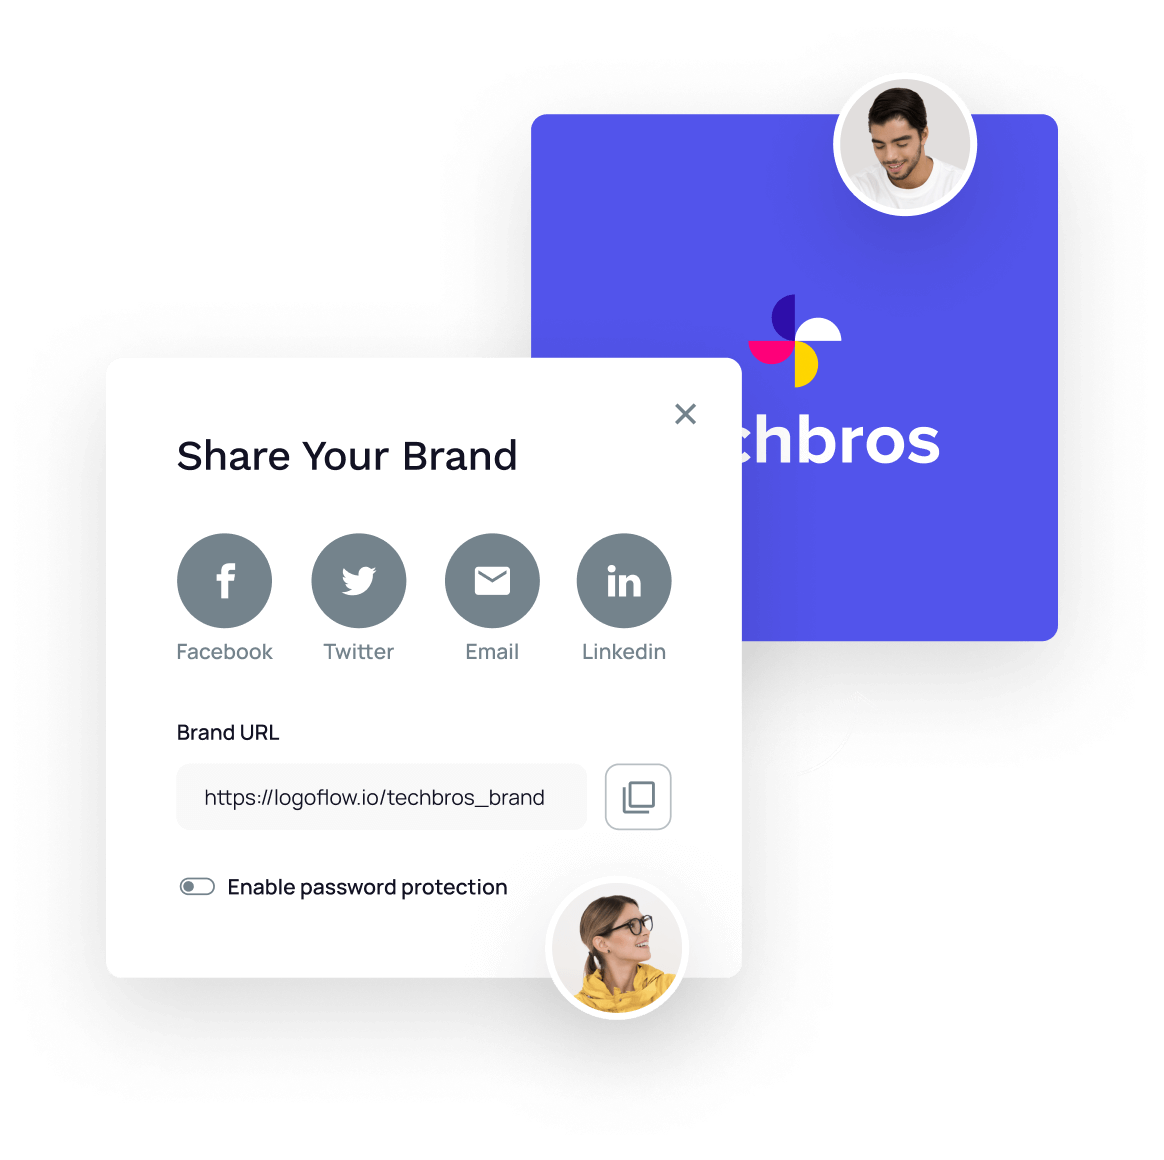 Illustration - Share Your Brand Page